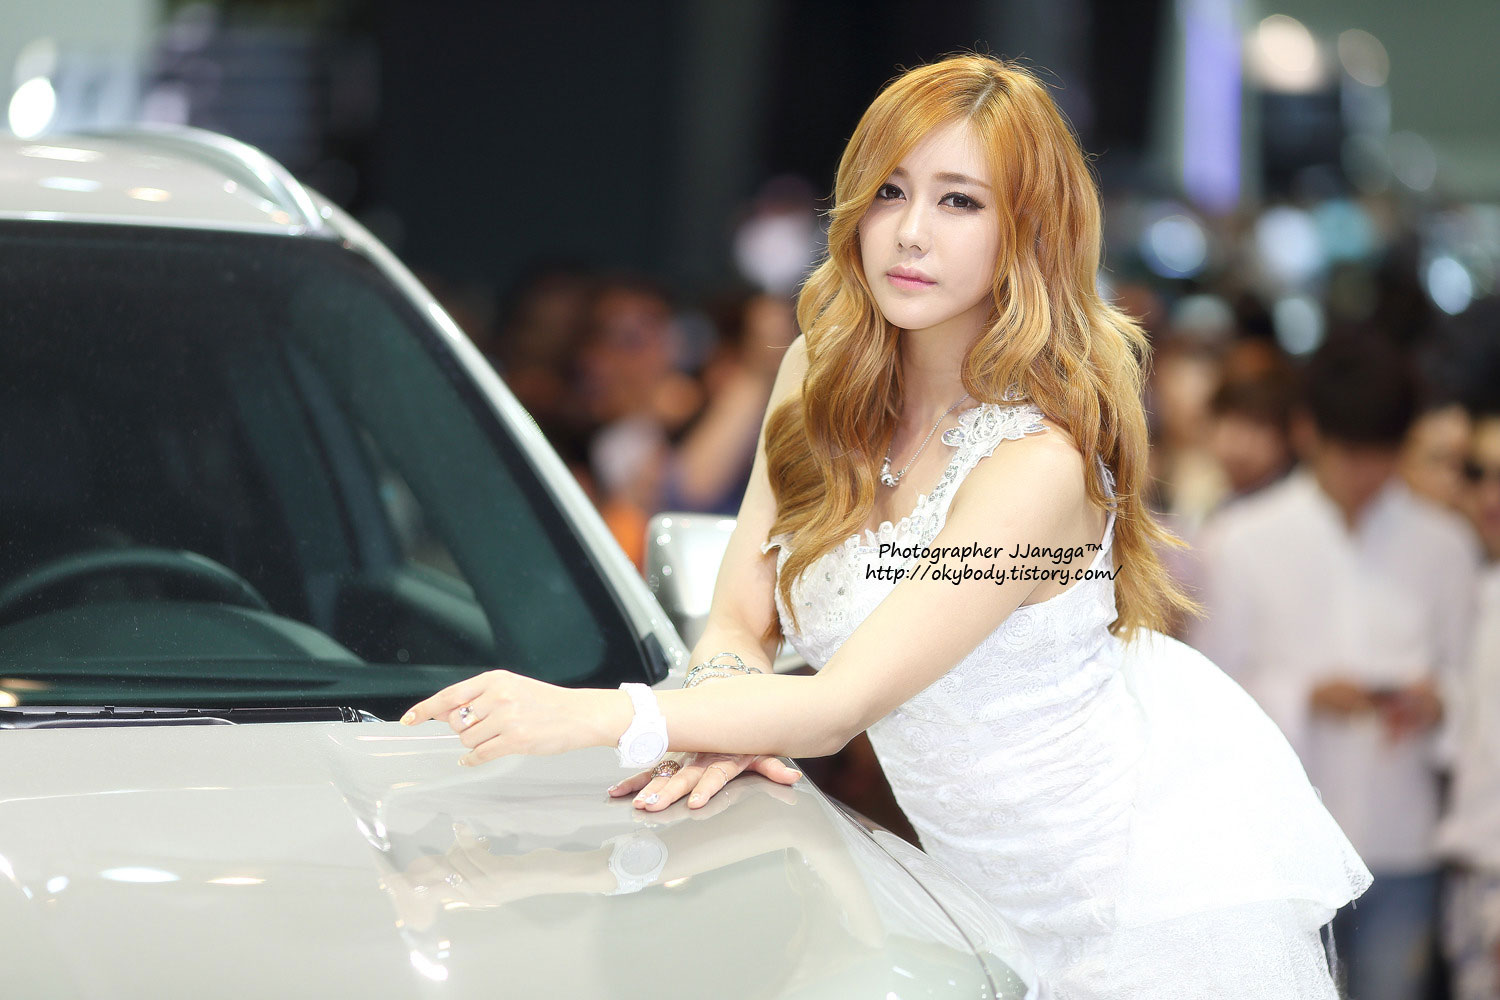 Kim Ha Yul Busan International Motor Show 2014